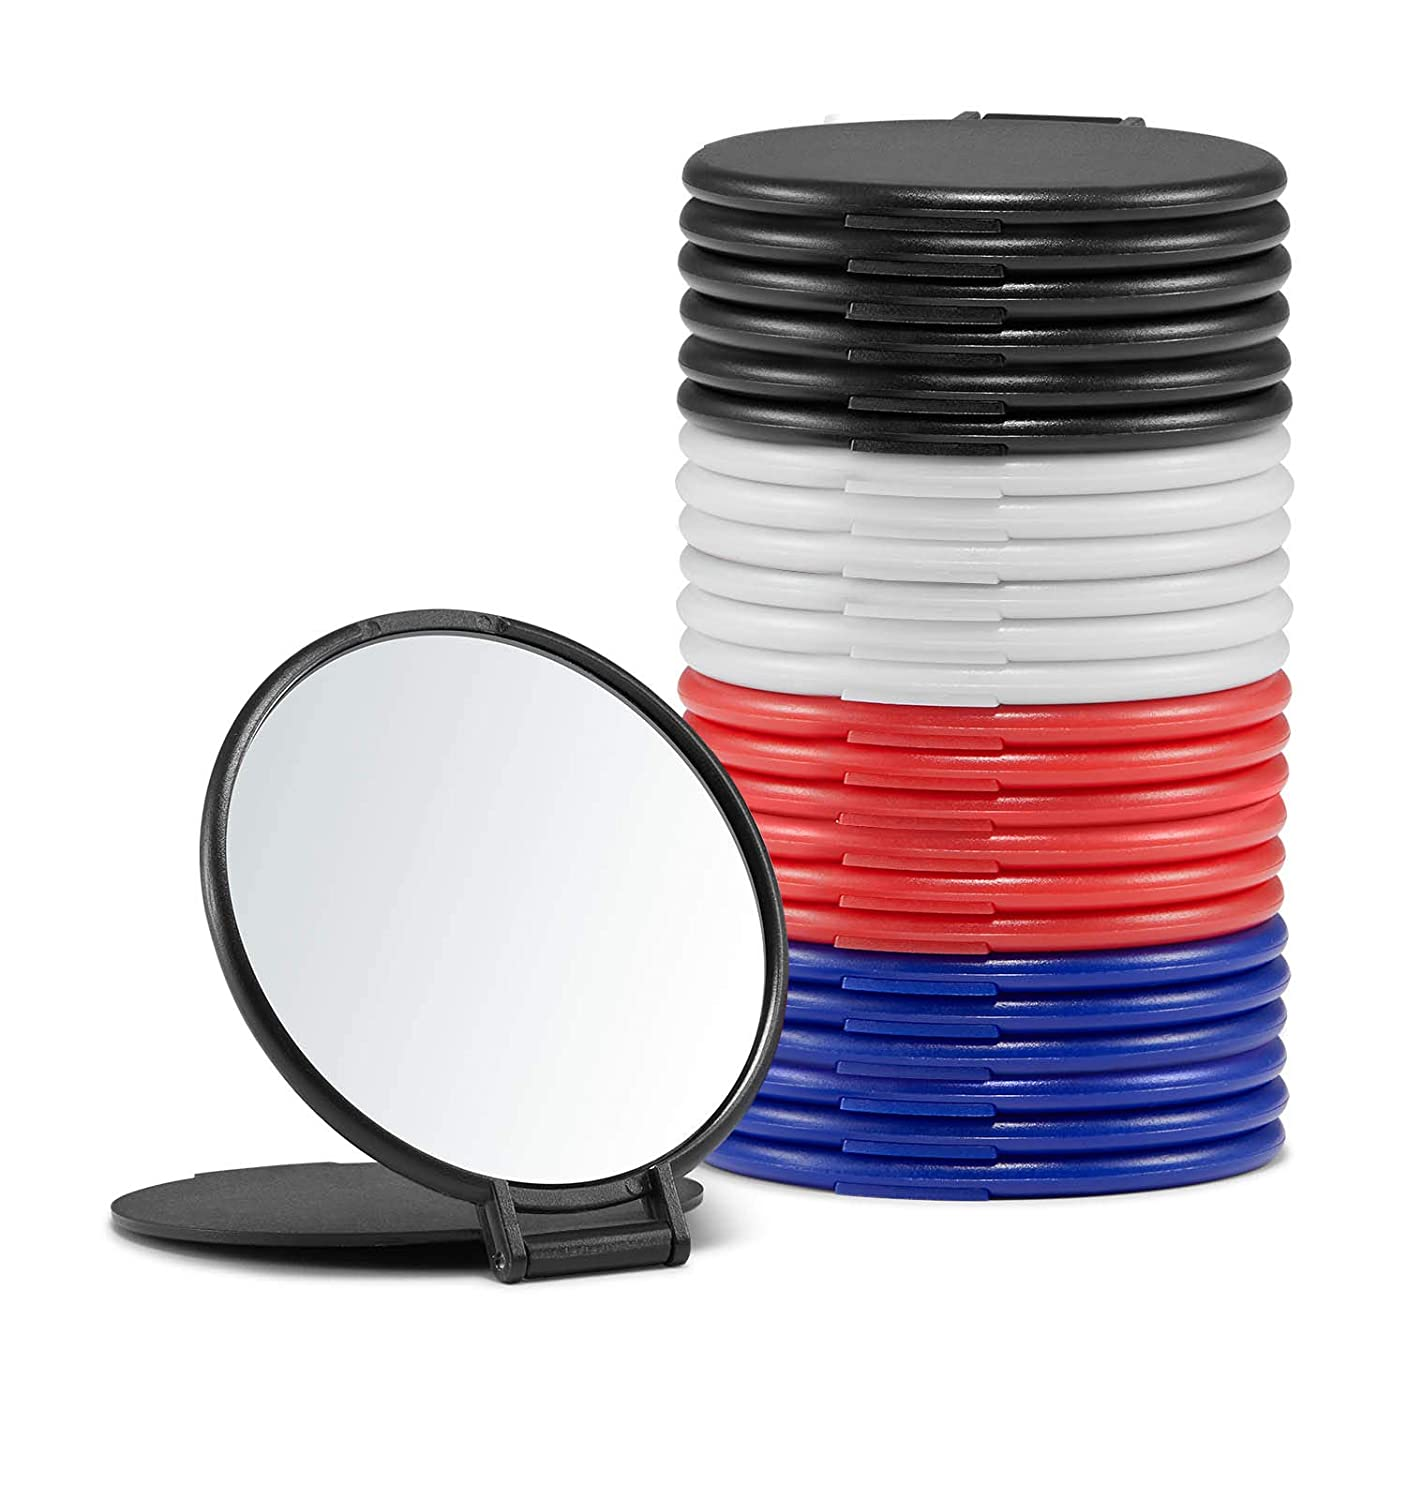 Compact Mirror Bulk, Round Makeup Mirror for Purse, Set of 24 (4-Color)